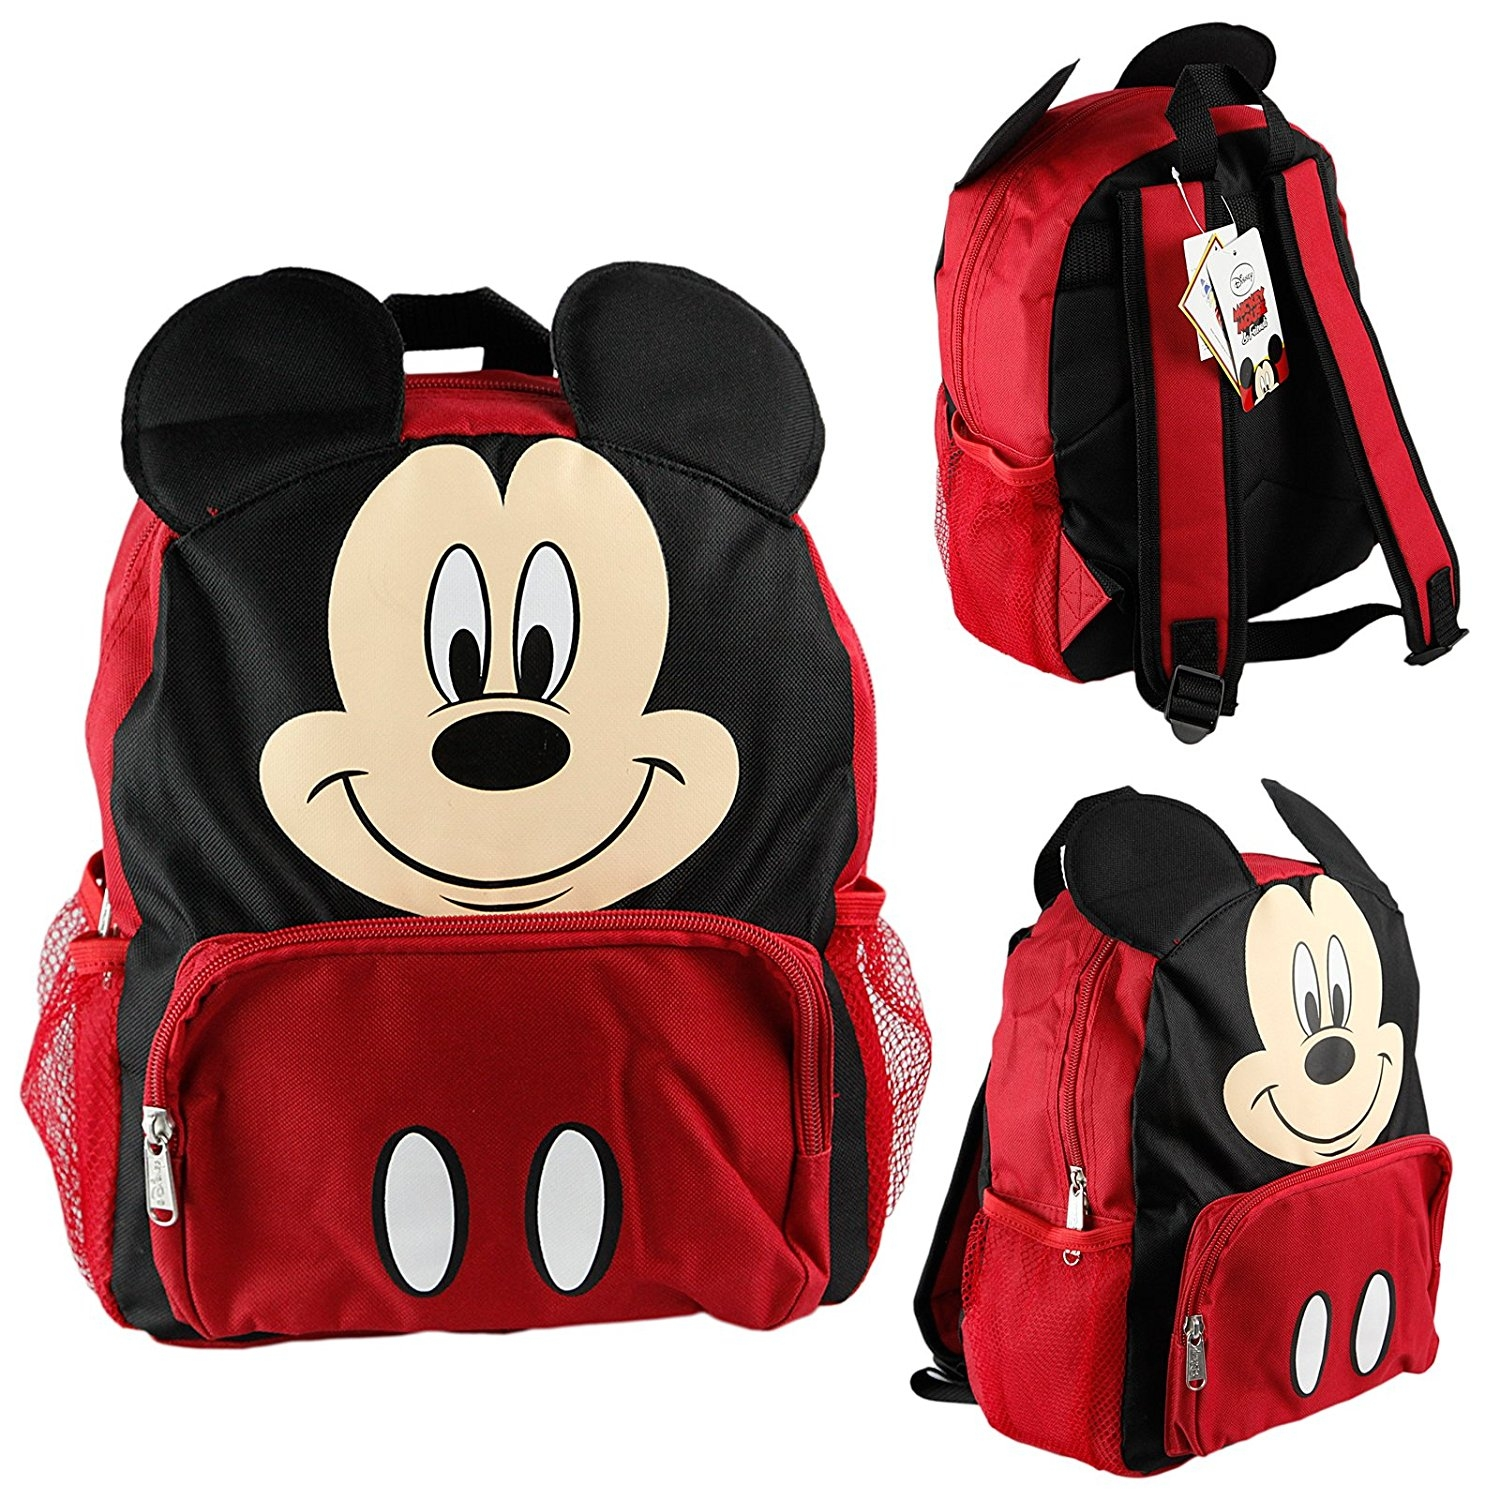 "Disney Mickey Mouse Kids 12"" Toddler School Backpack Canvas Book Bag w/Molded Face"